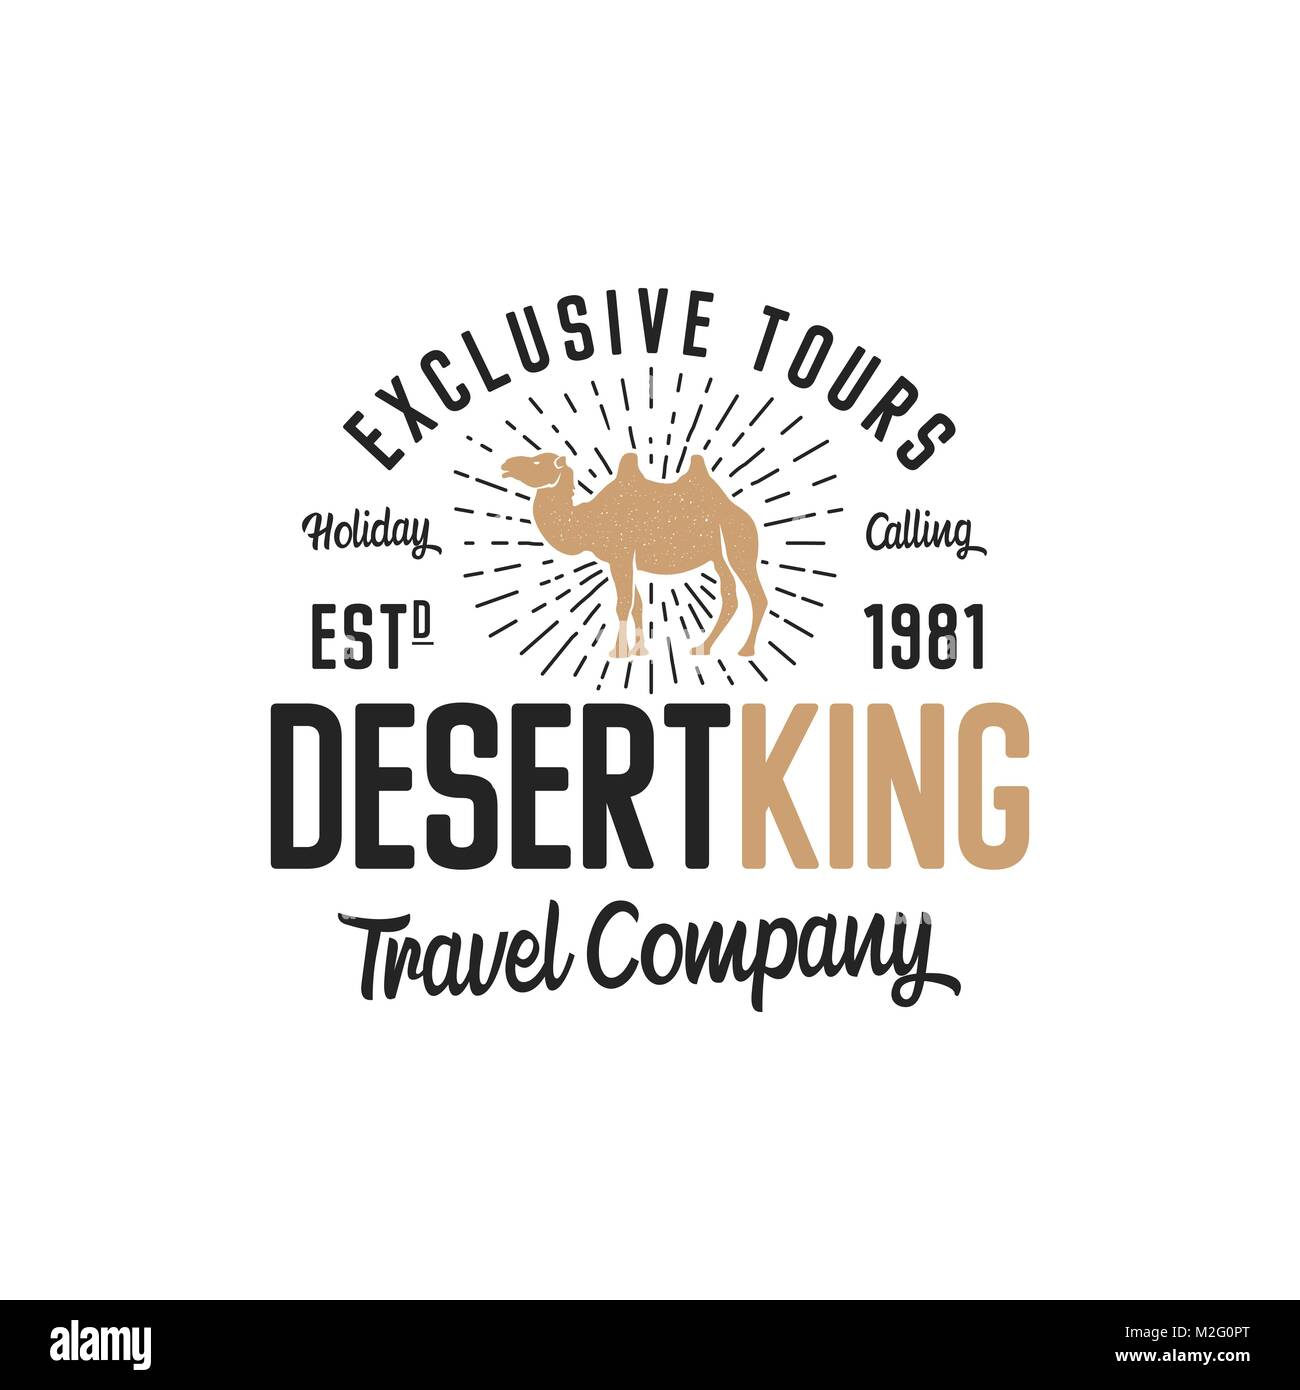 Camel logo template concept. Travel company logotype. Desert king text quote. Exclusive tours vacation business - Stock Vector